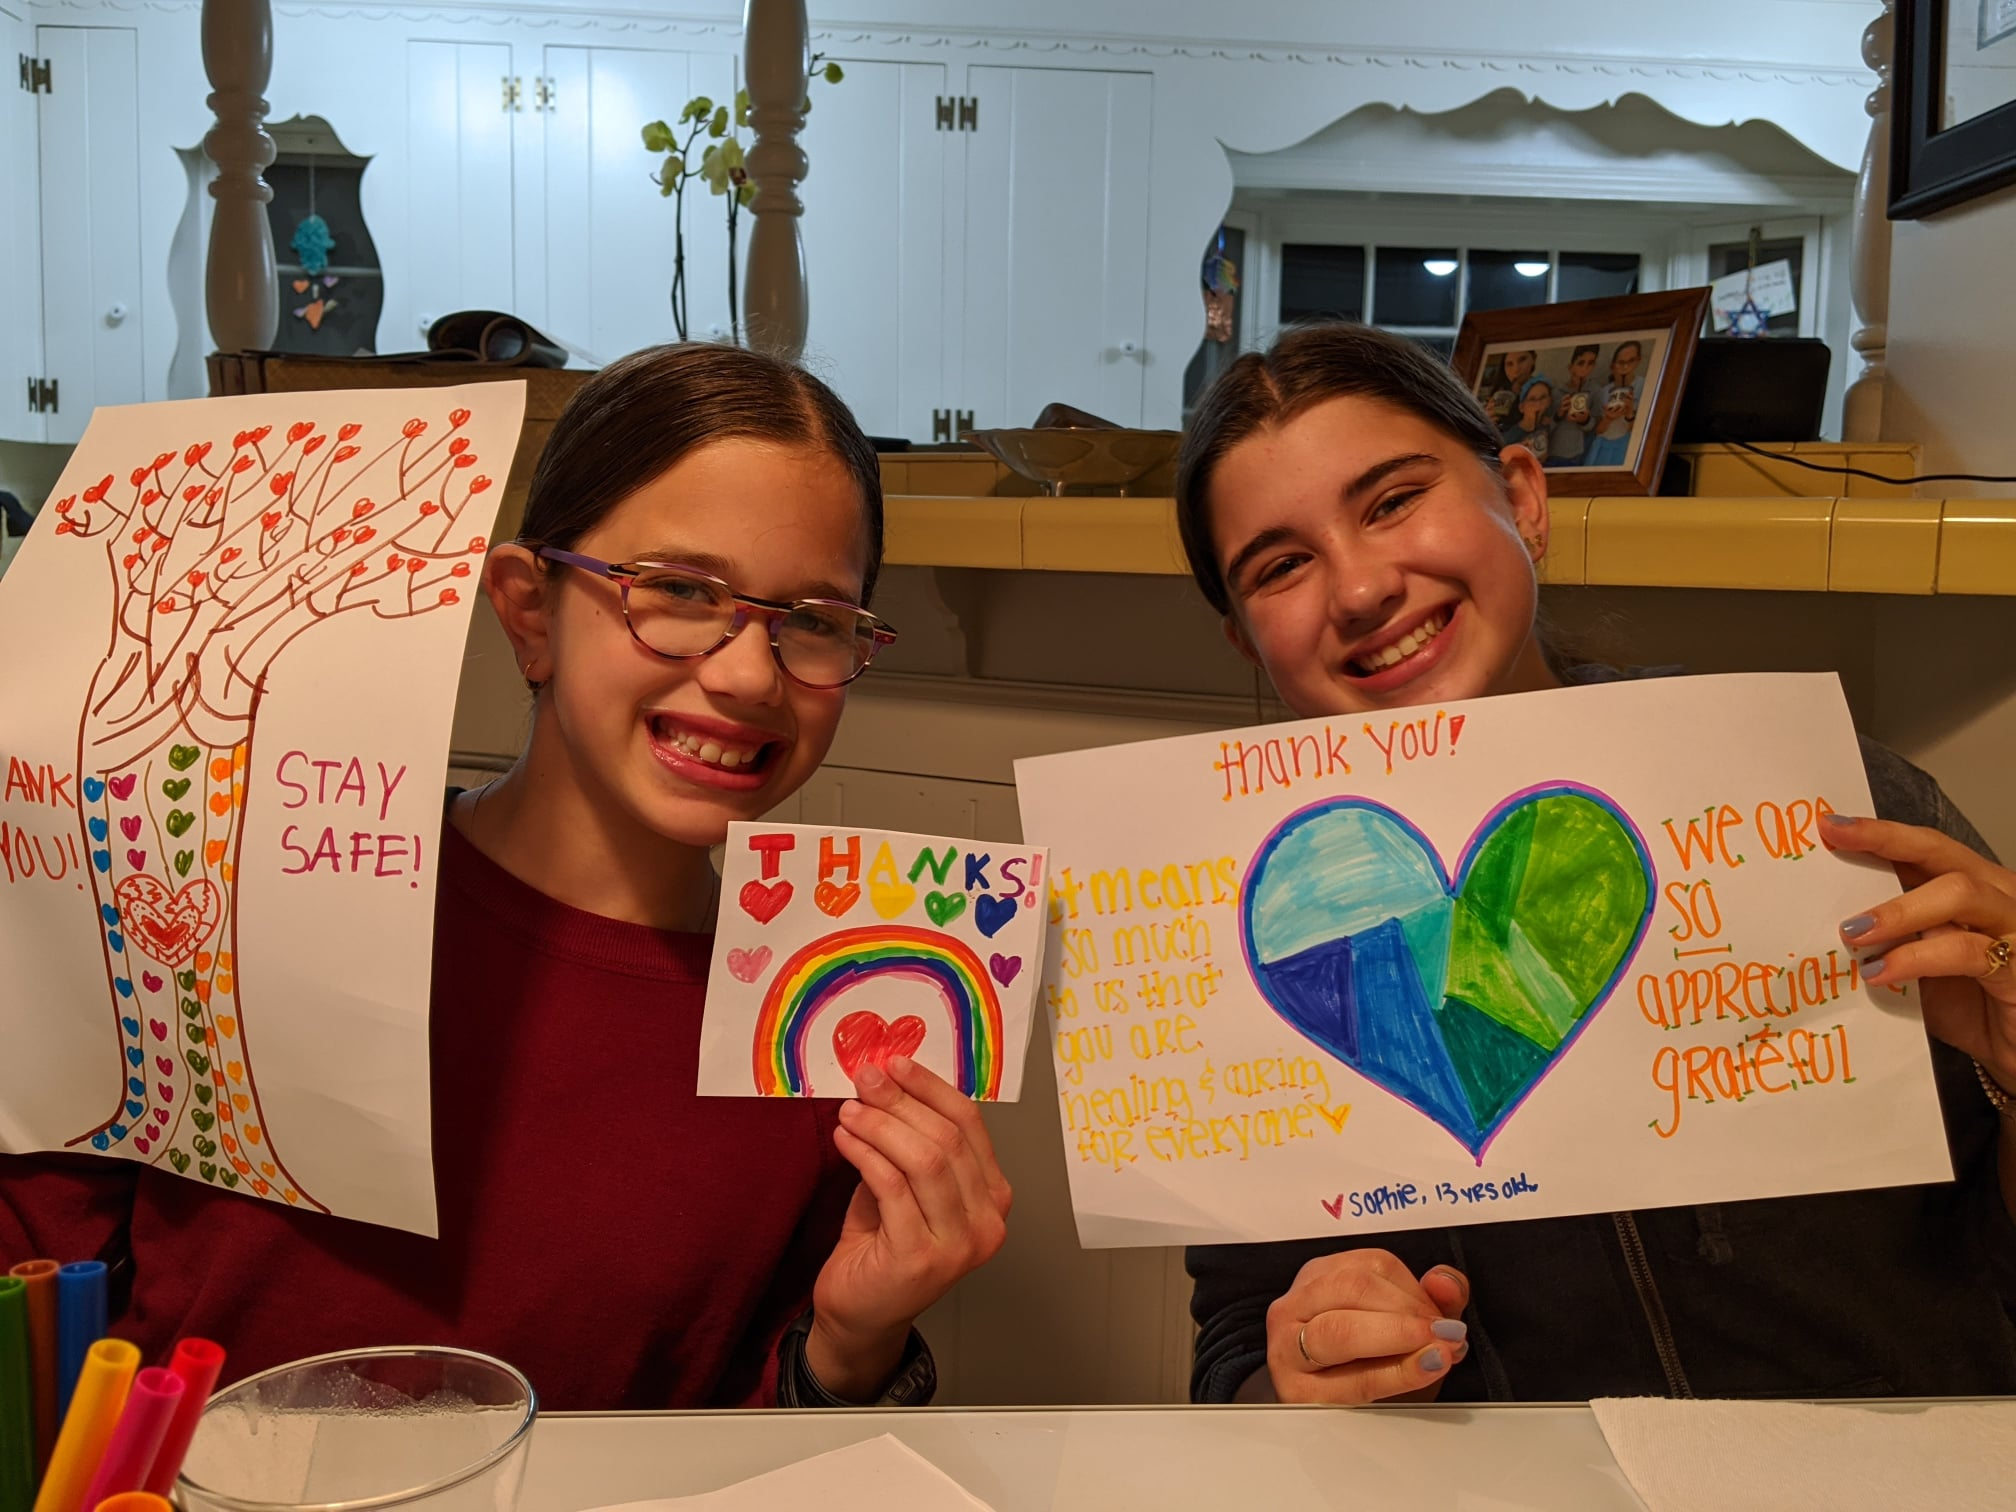 Two girls with posters they created doing acts of kindness